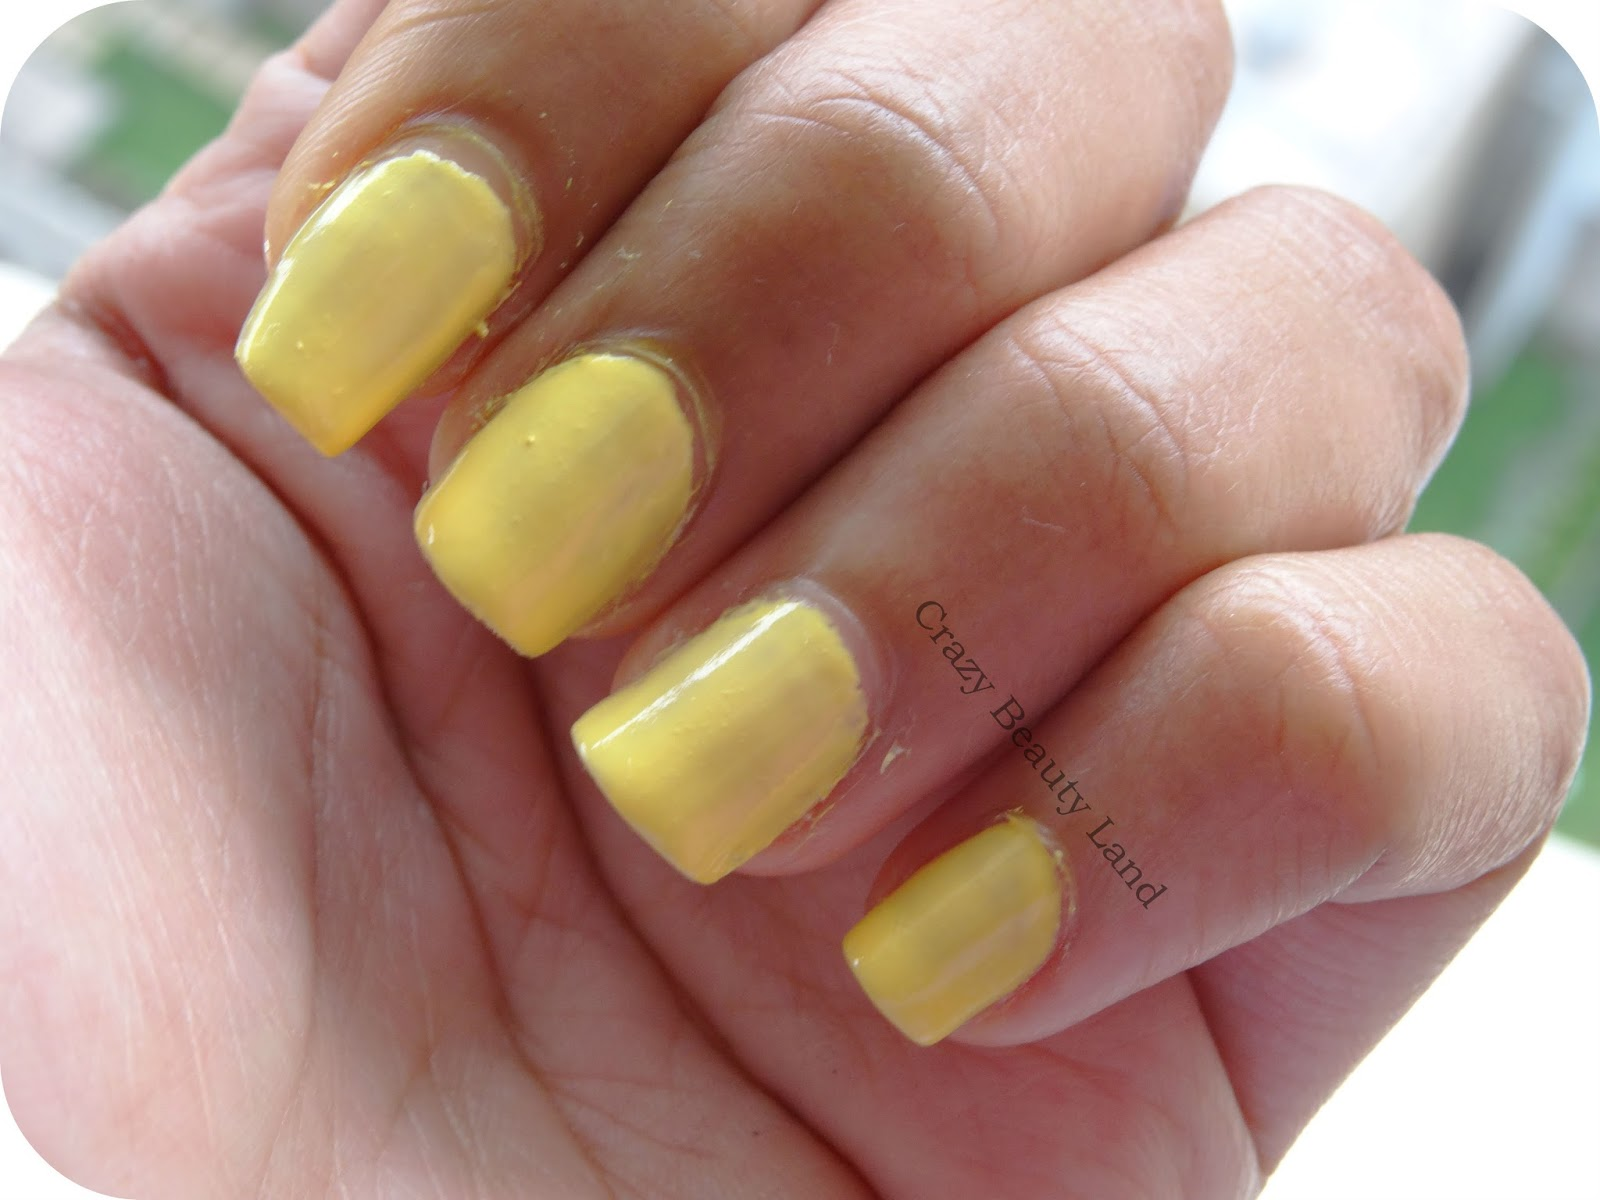 We all need a little yellow sometimes! Sally Hansen Hard As Nails ...